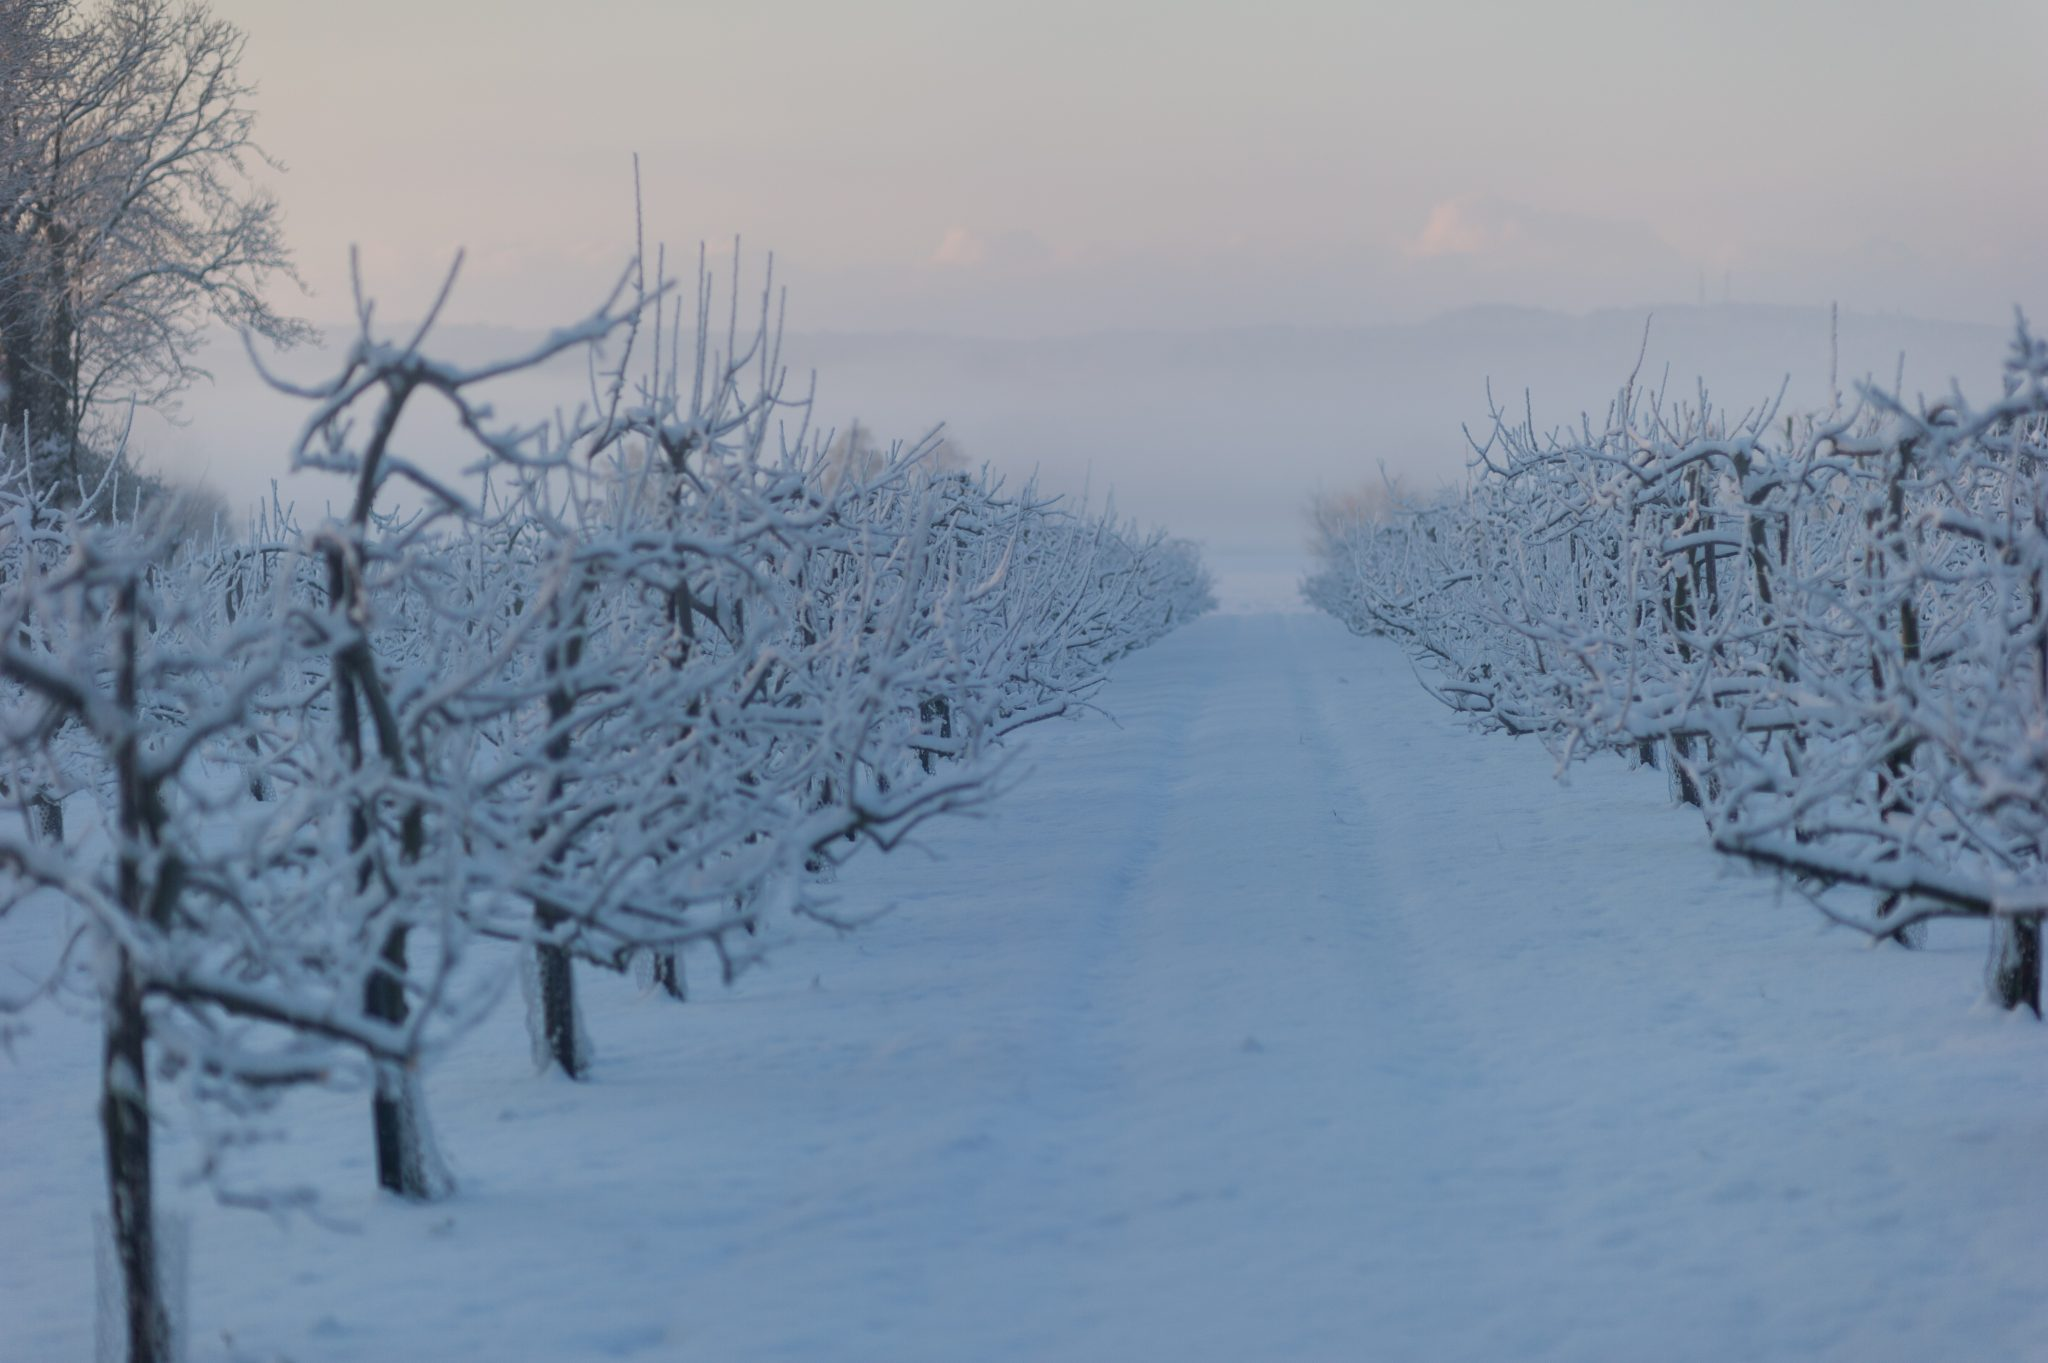 Beast From The East, #snowmaggeden, Tim Hewage Photography, Tonbridge, Kent, rural England, winter wonderland, apple orchards in snow